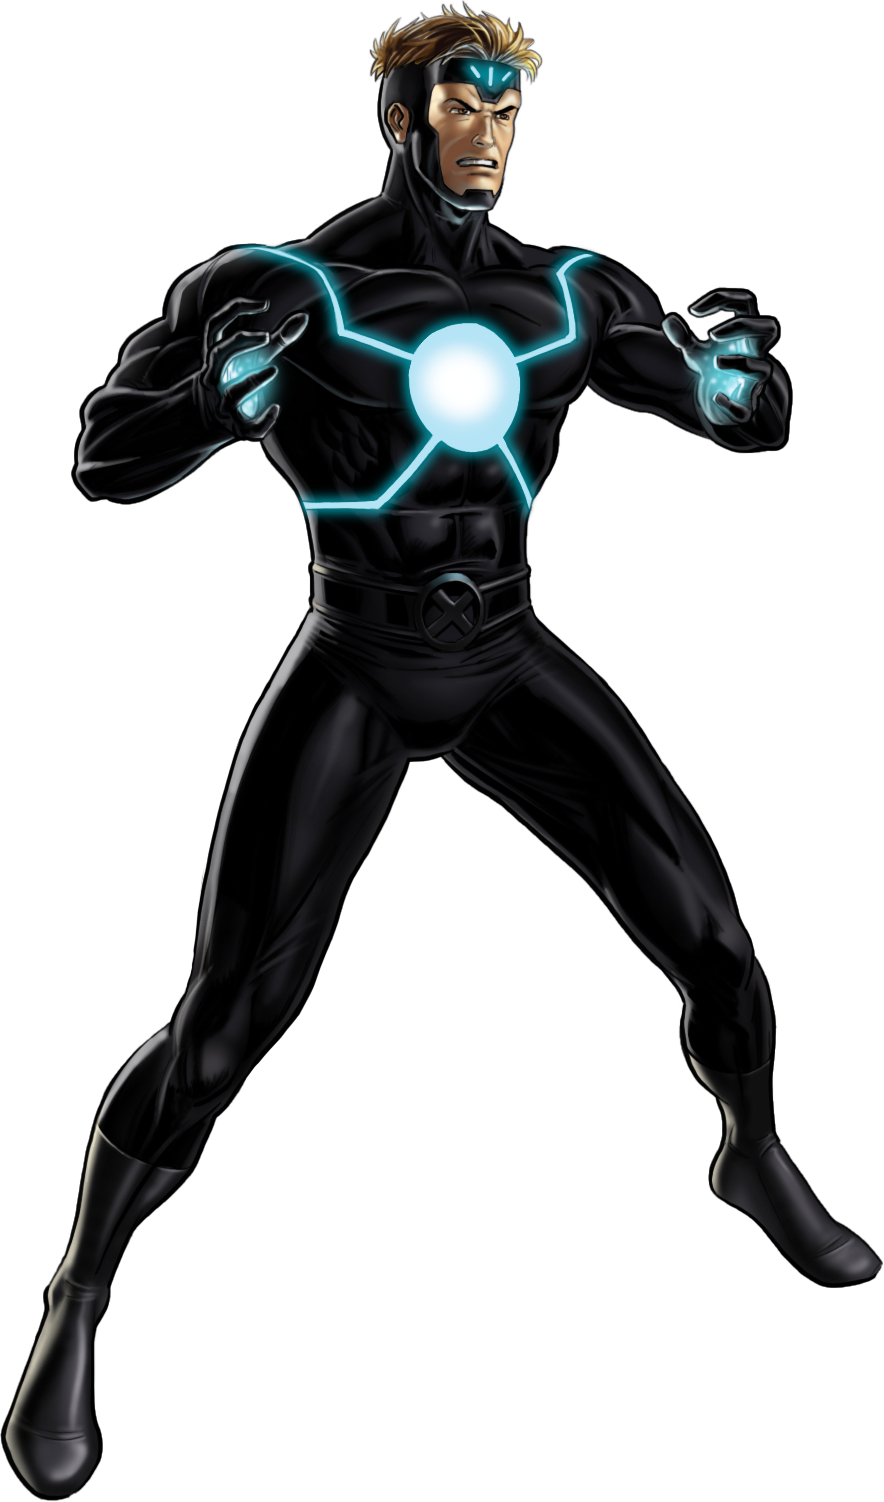 clip art free X men clipart. Havok marvel avengers alliance